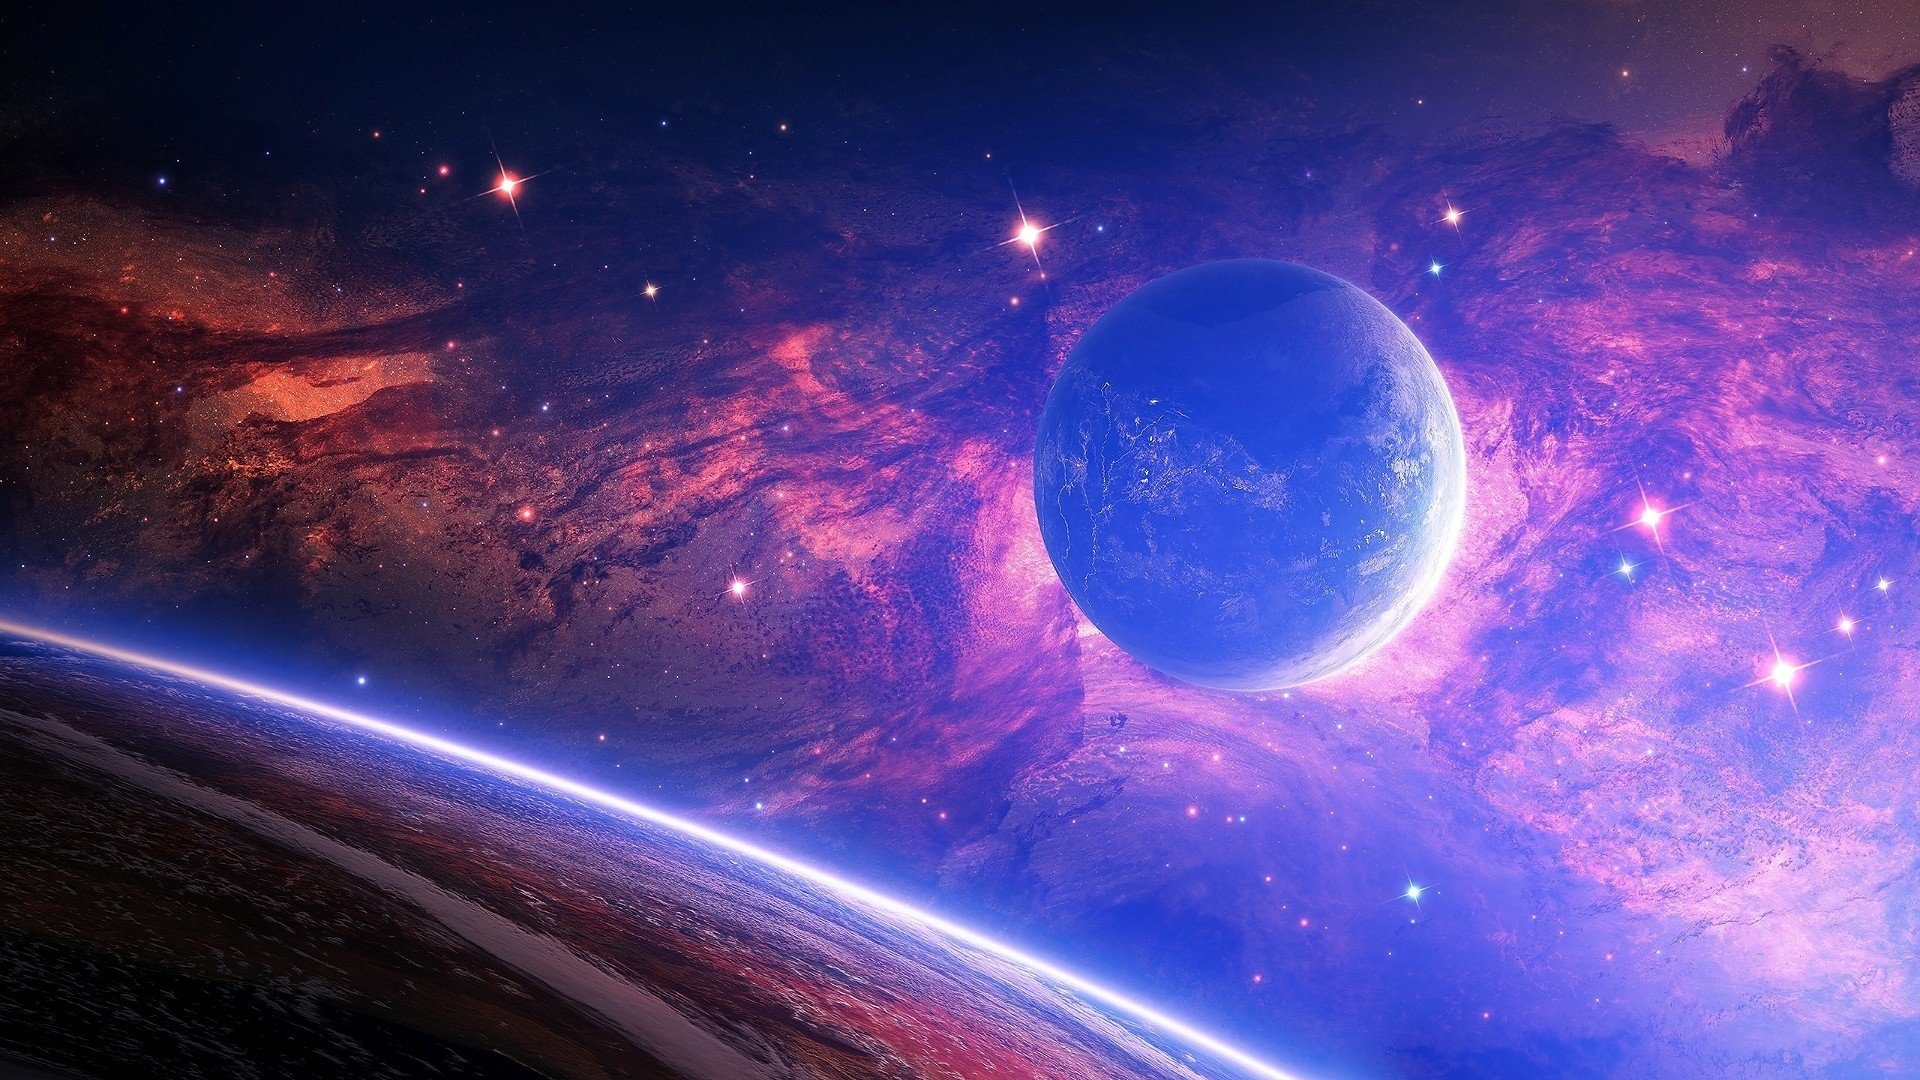 space wallpaper ·① download free awesome high resolution space